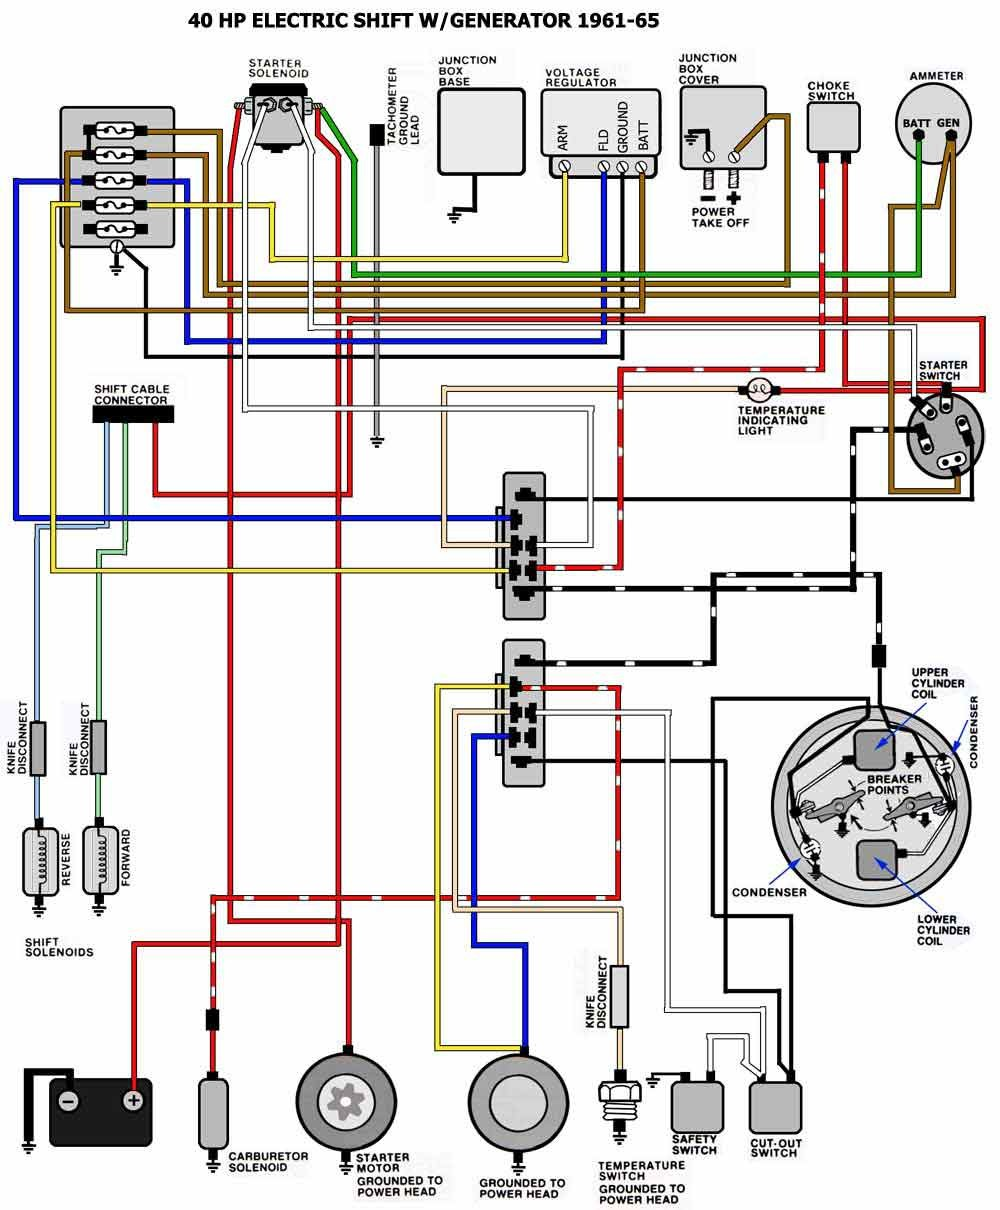 Johnson ignition switch wiring diagram wiring diagram image 1961 1965 evinrude 40hp selectric wiring diagram technical information from johnson ignition switch cheapraybanclubmaster Choice Image